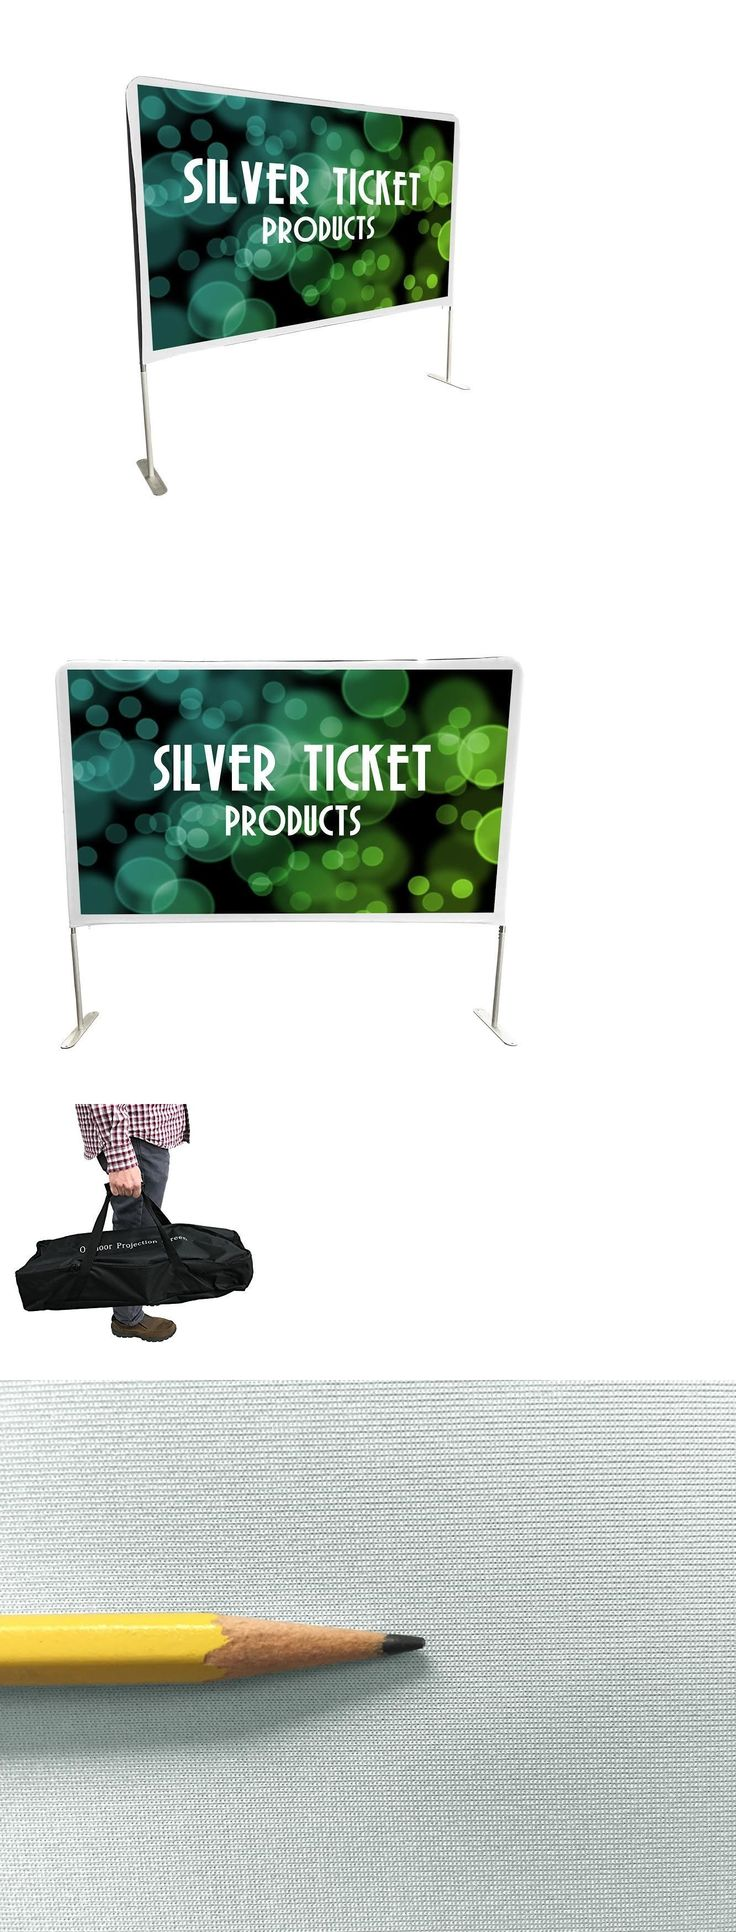 Projection Screens and Material: Ste-169150 Silver Ticket Entry Level Indoor Outdoor Movie Projector Screen 150 -> BUY IT NOW ONLY: $159.98 on eBay!